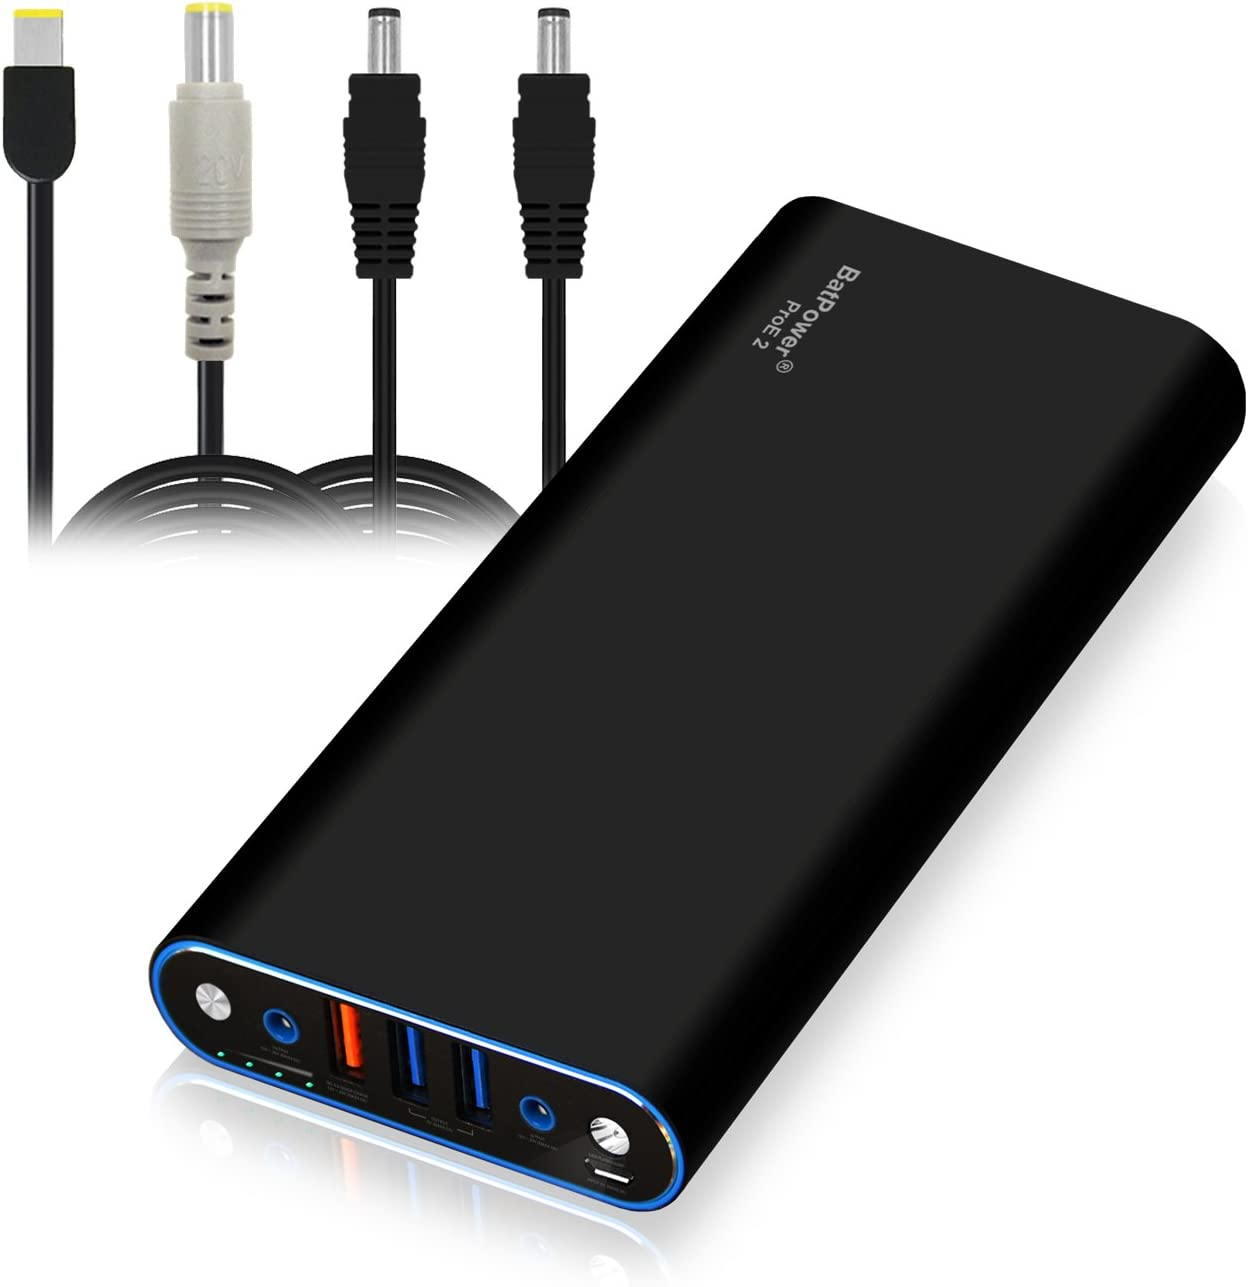 BatPower EX10L 148Wh Laptop Portable Charger Power Bank for Lenovo ThinkPad Carbon Ultrabook IdeaPad Helix Flex Yoga Notebook (Rectangle or Circular Connector) USB QC Charge for Tablet Smartphone